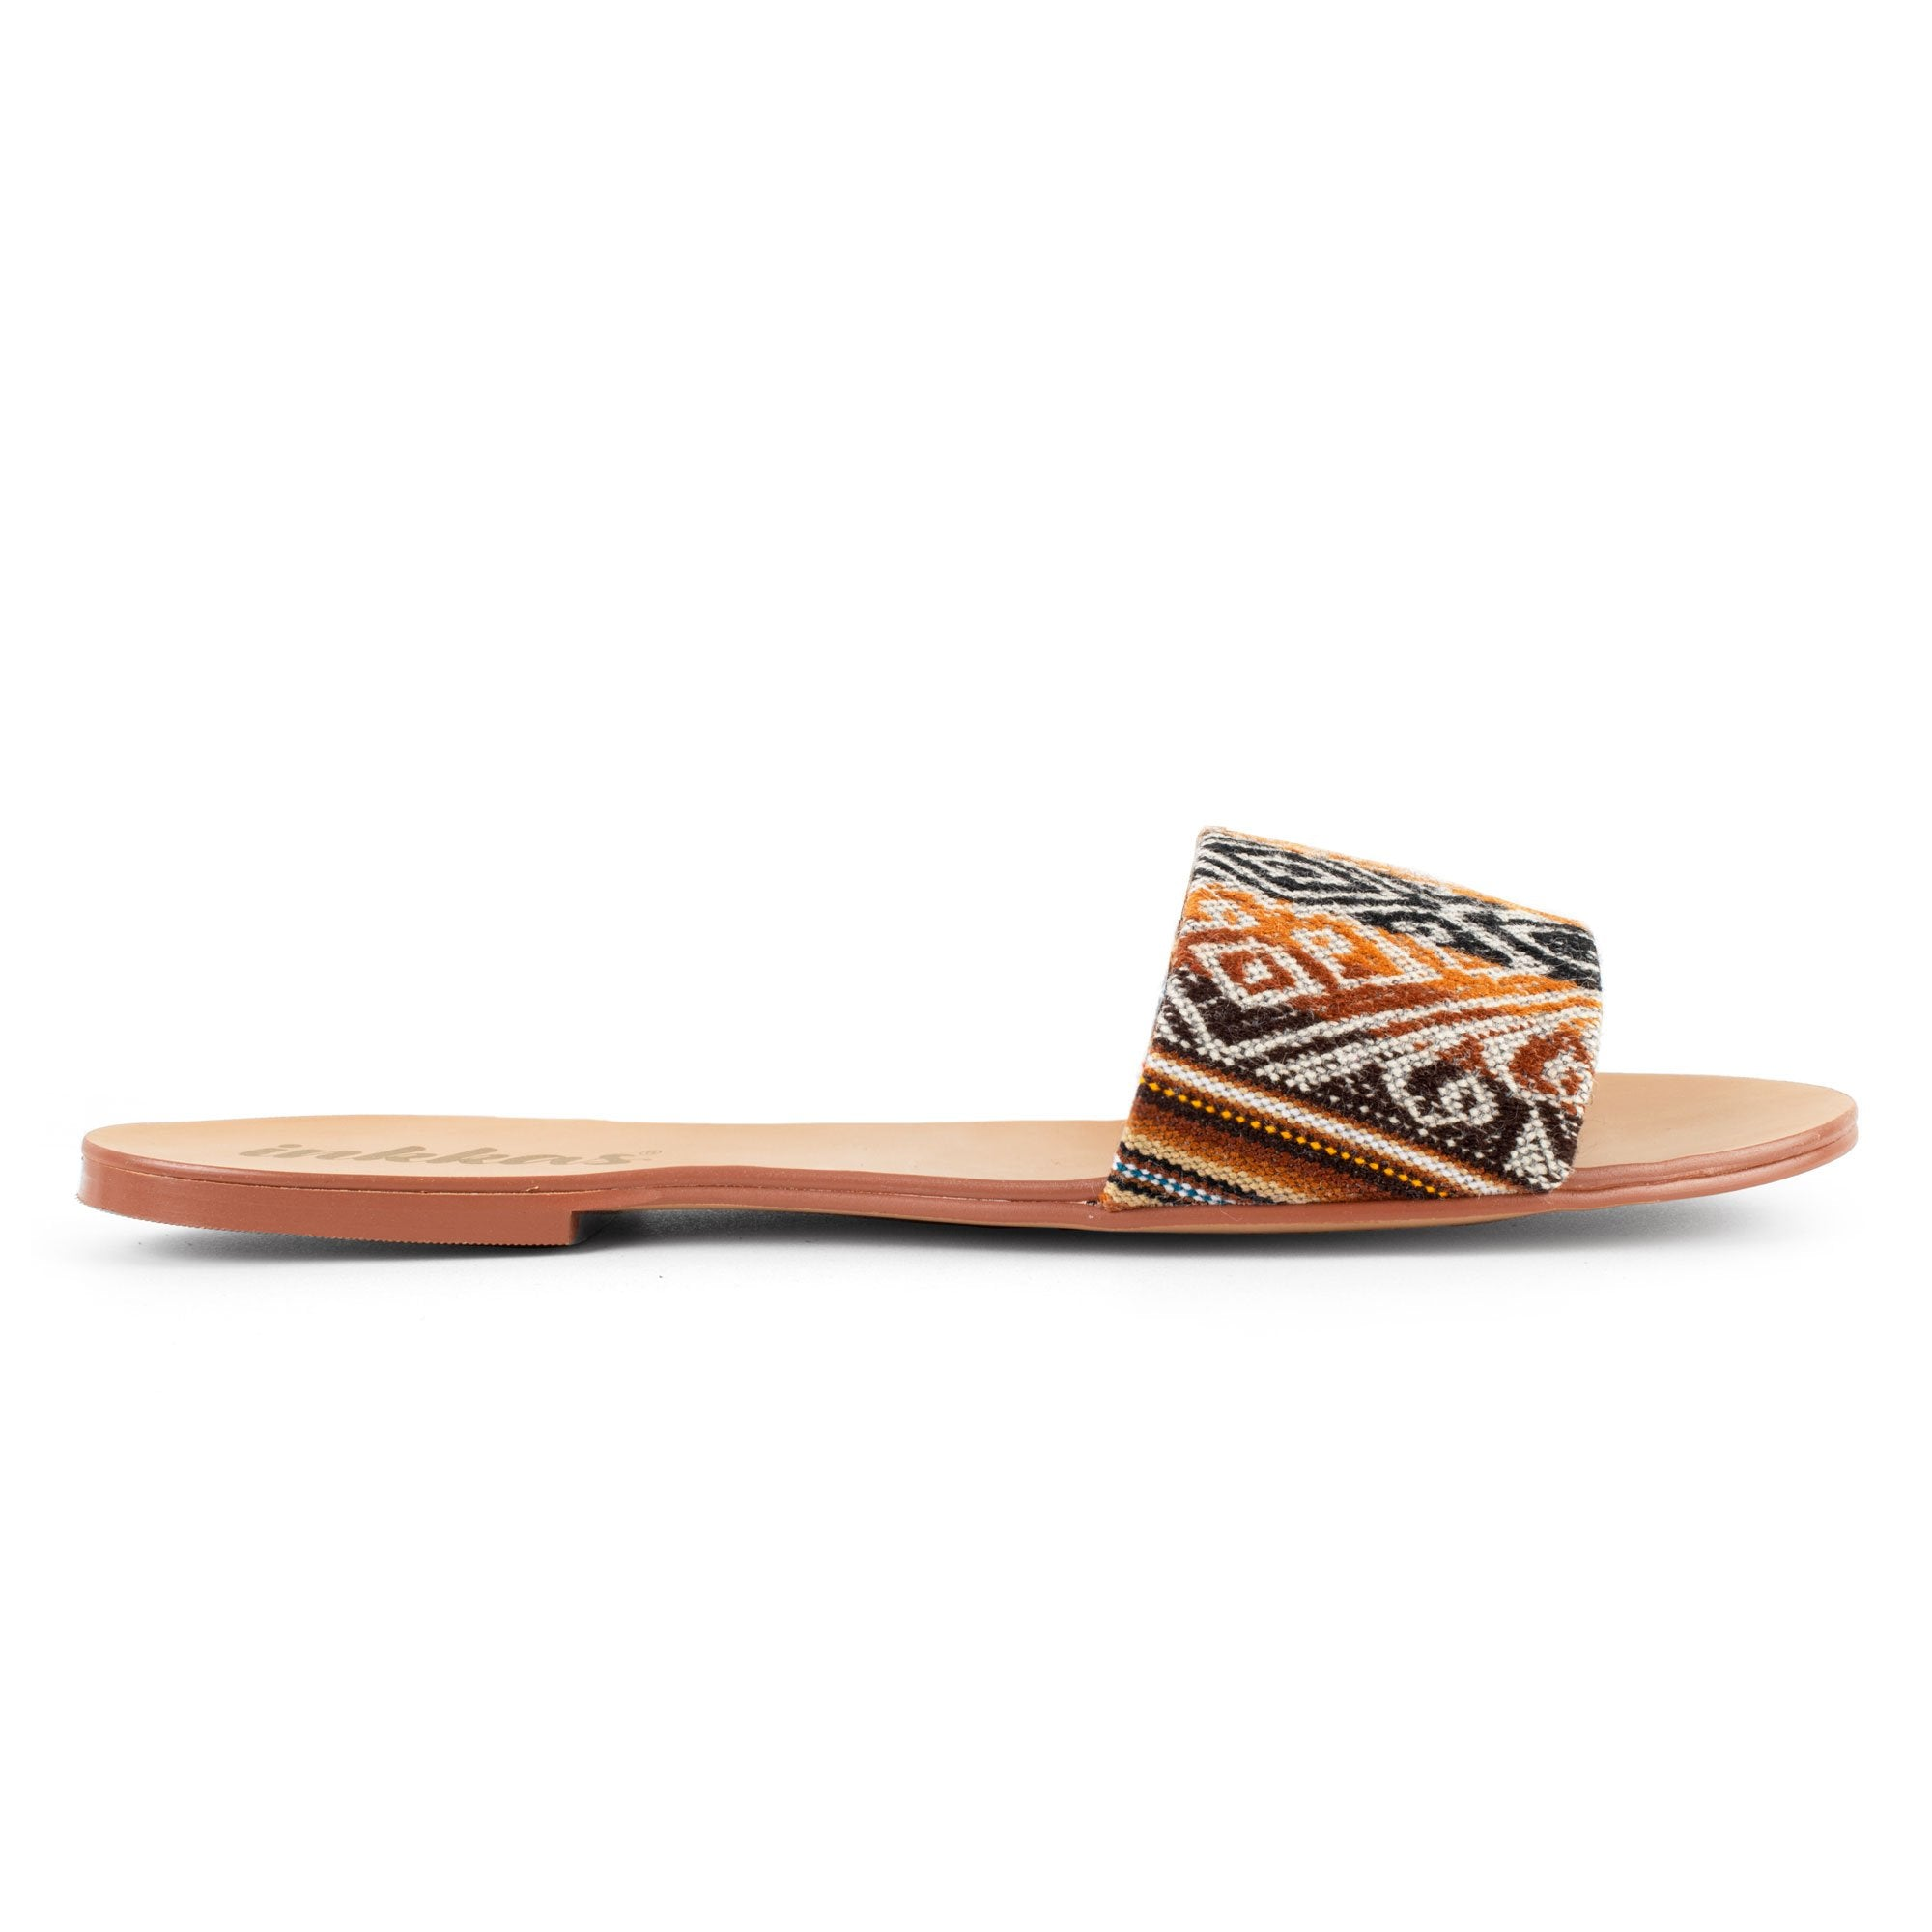 London Sky Slide Sandal